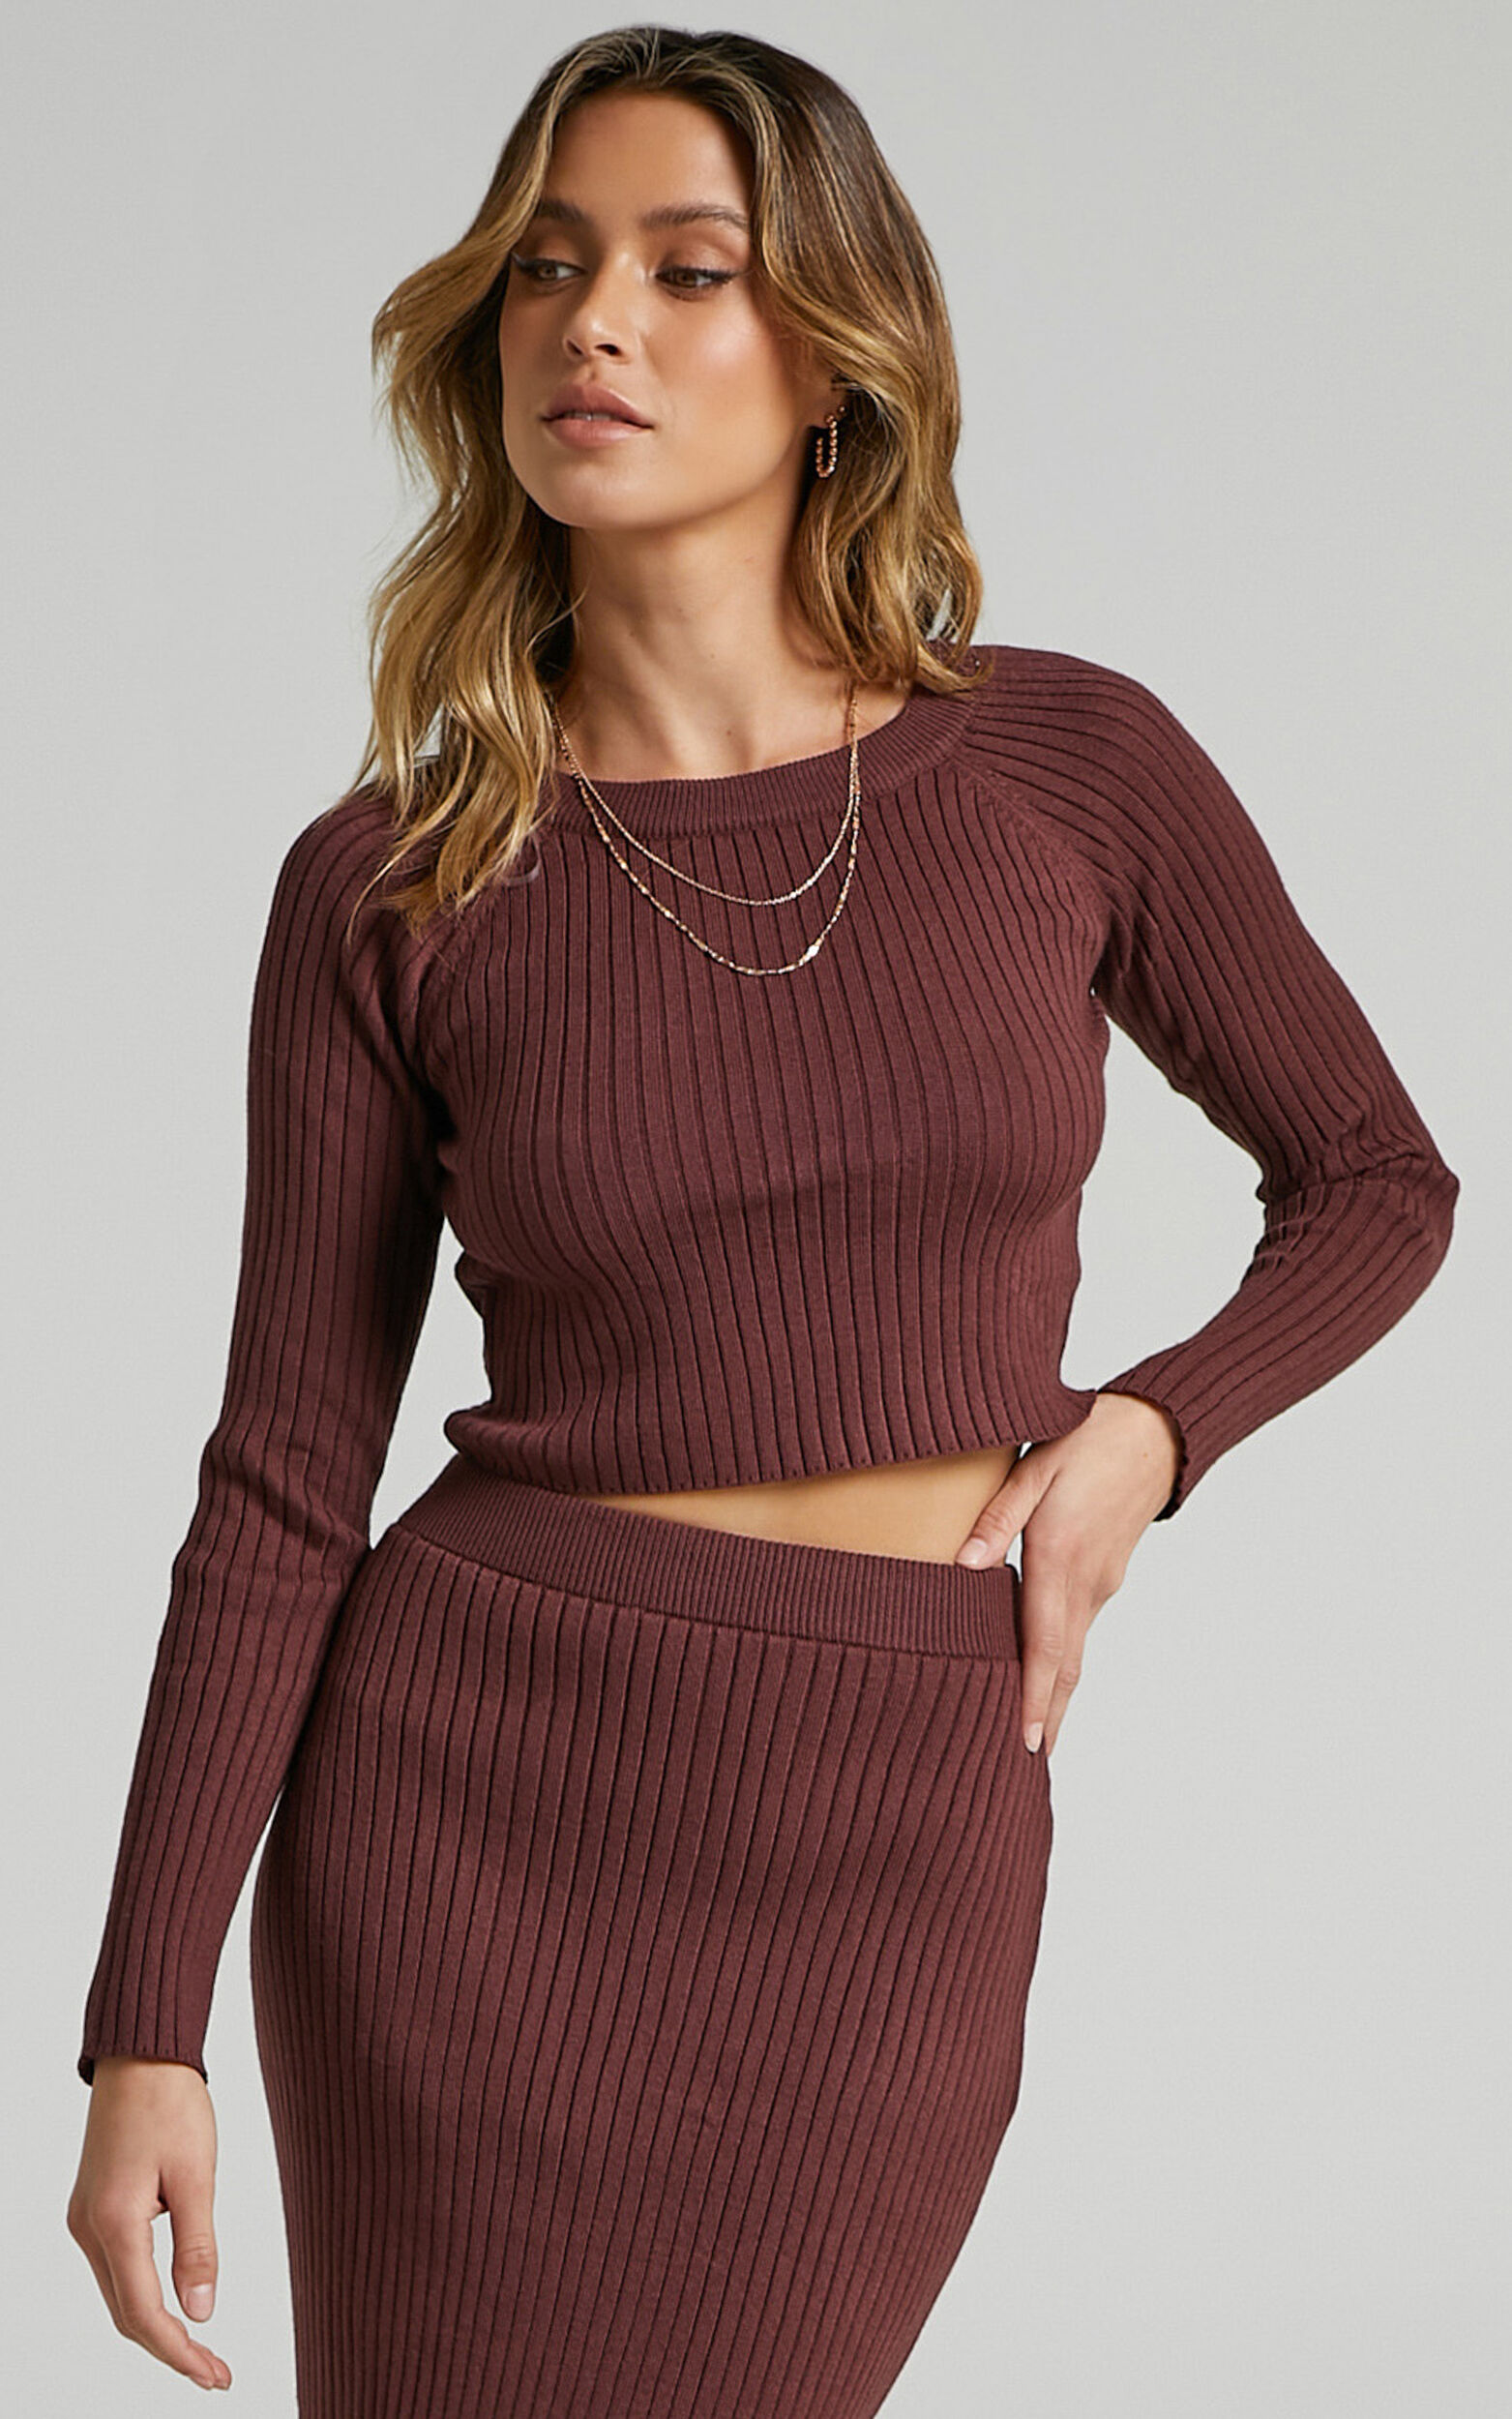 Yolanda Long Sleeve Open Back Knit Top in Chocolate - L, BRN1, super-hi-res image number null